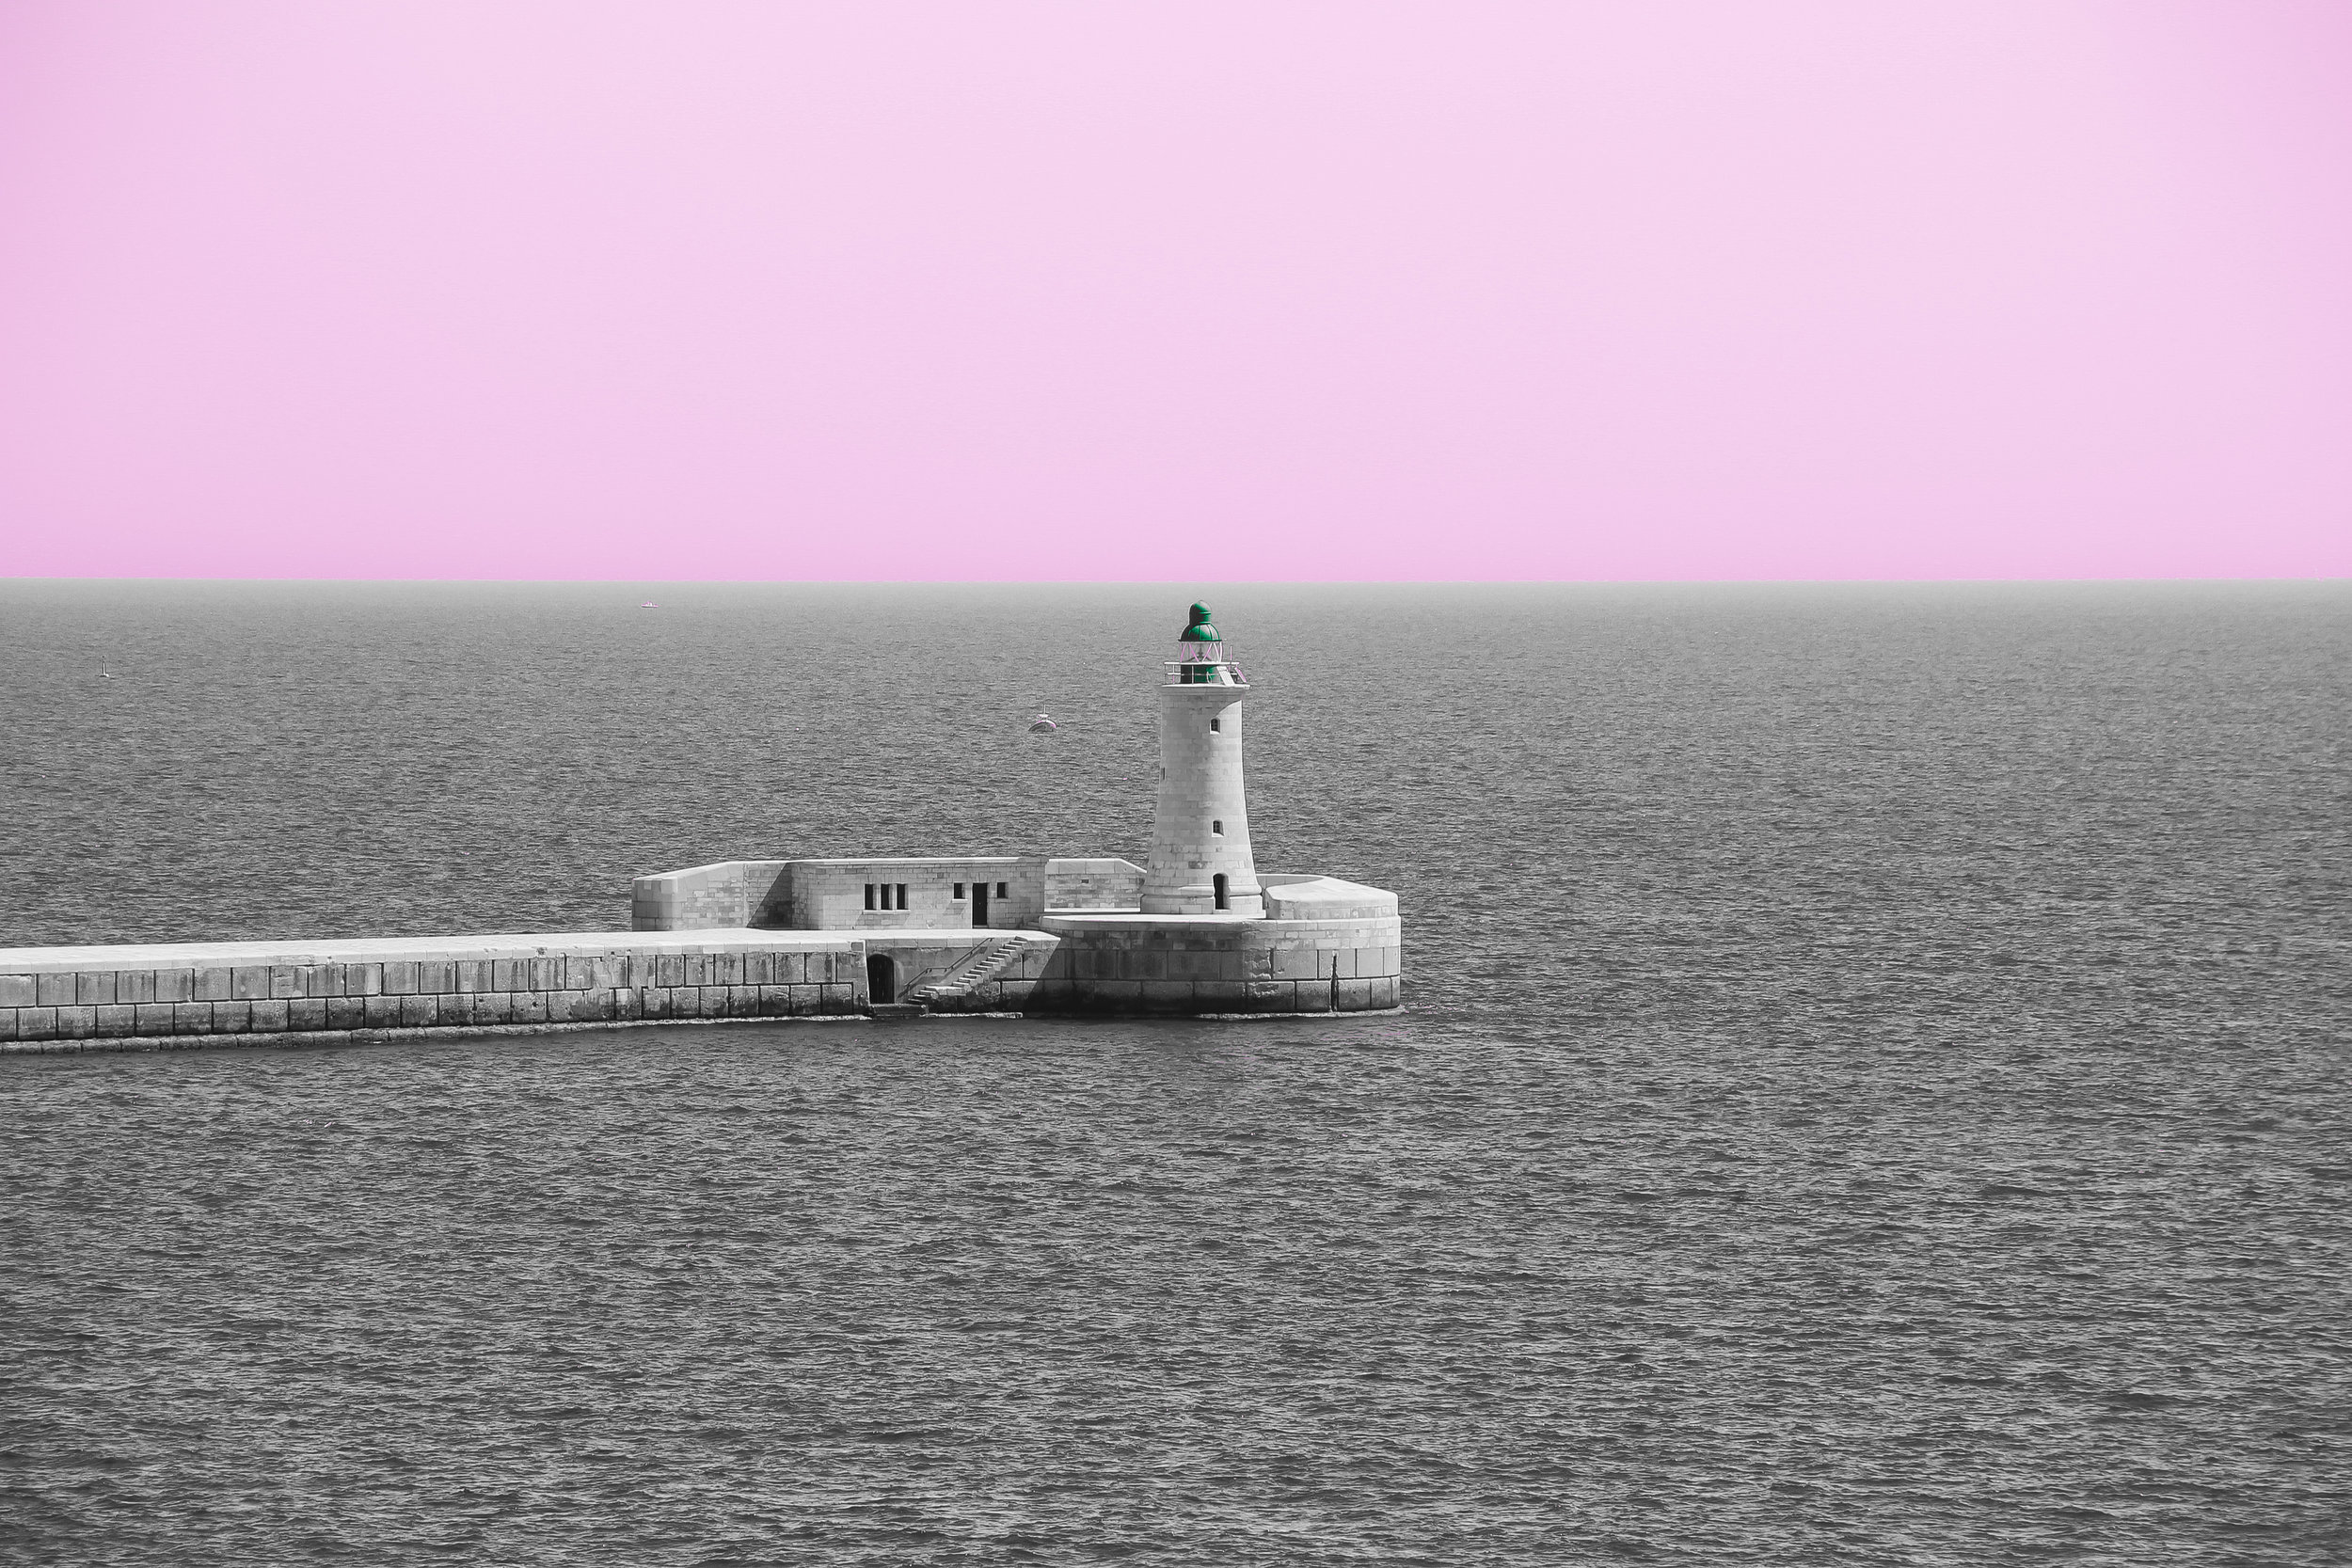 Grand Harbour Lighthouse | the Mediterranean Sea | Valletta | - Thinking About Appreciation For Quality In Malta | Malta, Europe | DoLessGetMoreDone.com | - Canon Minimal Travel Documentary Photography | Fine Art Photography - search for liveability | Sustainability